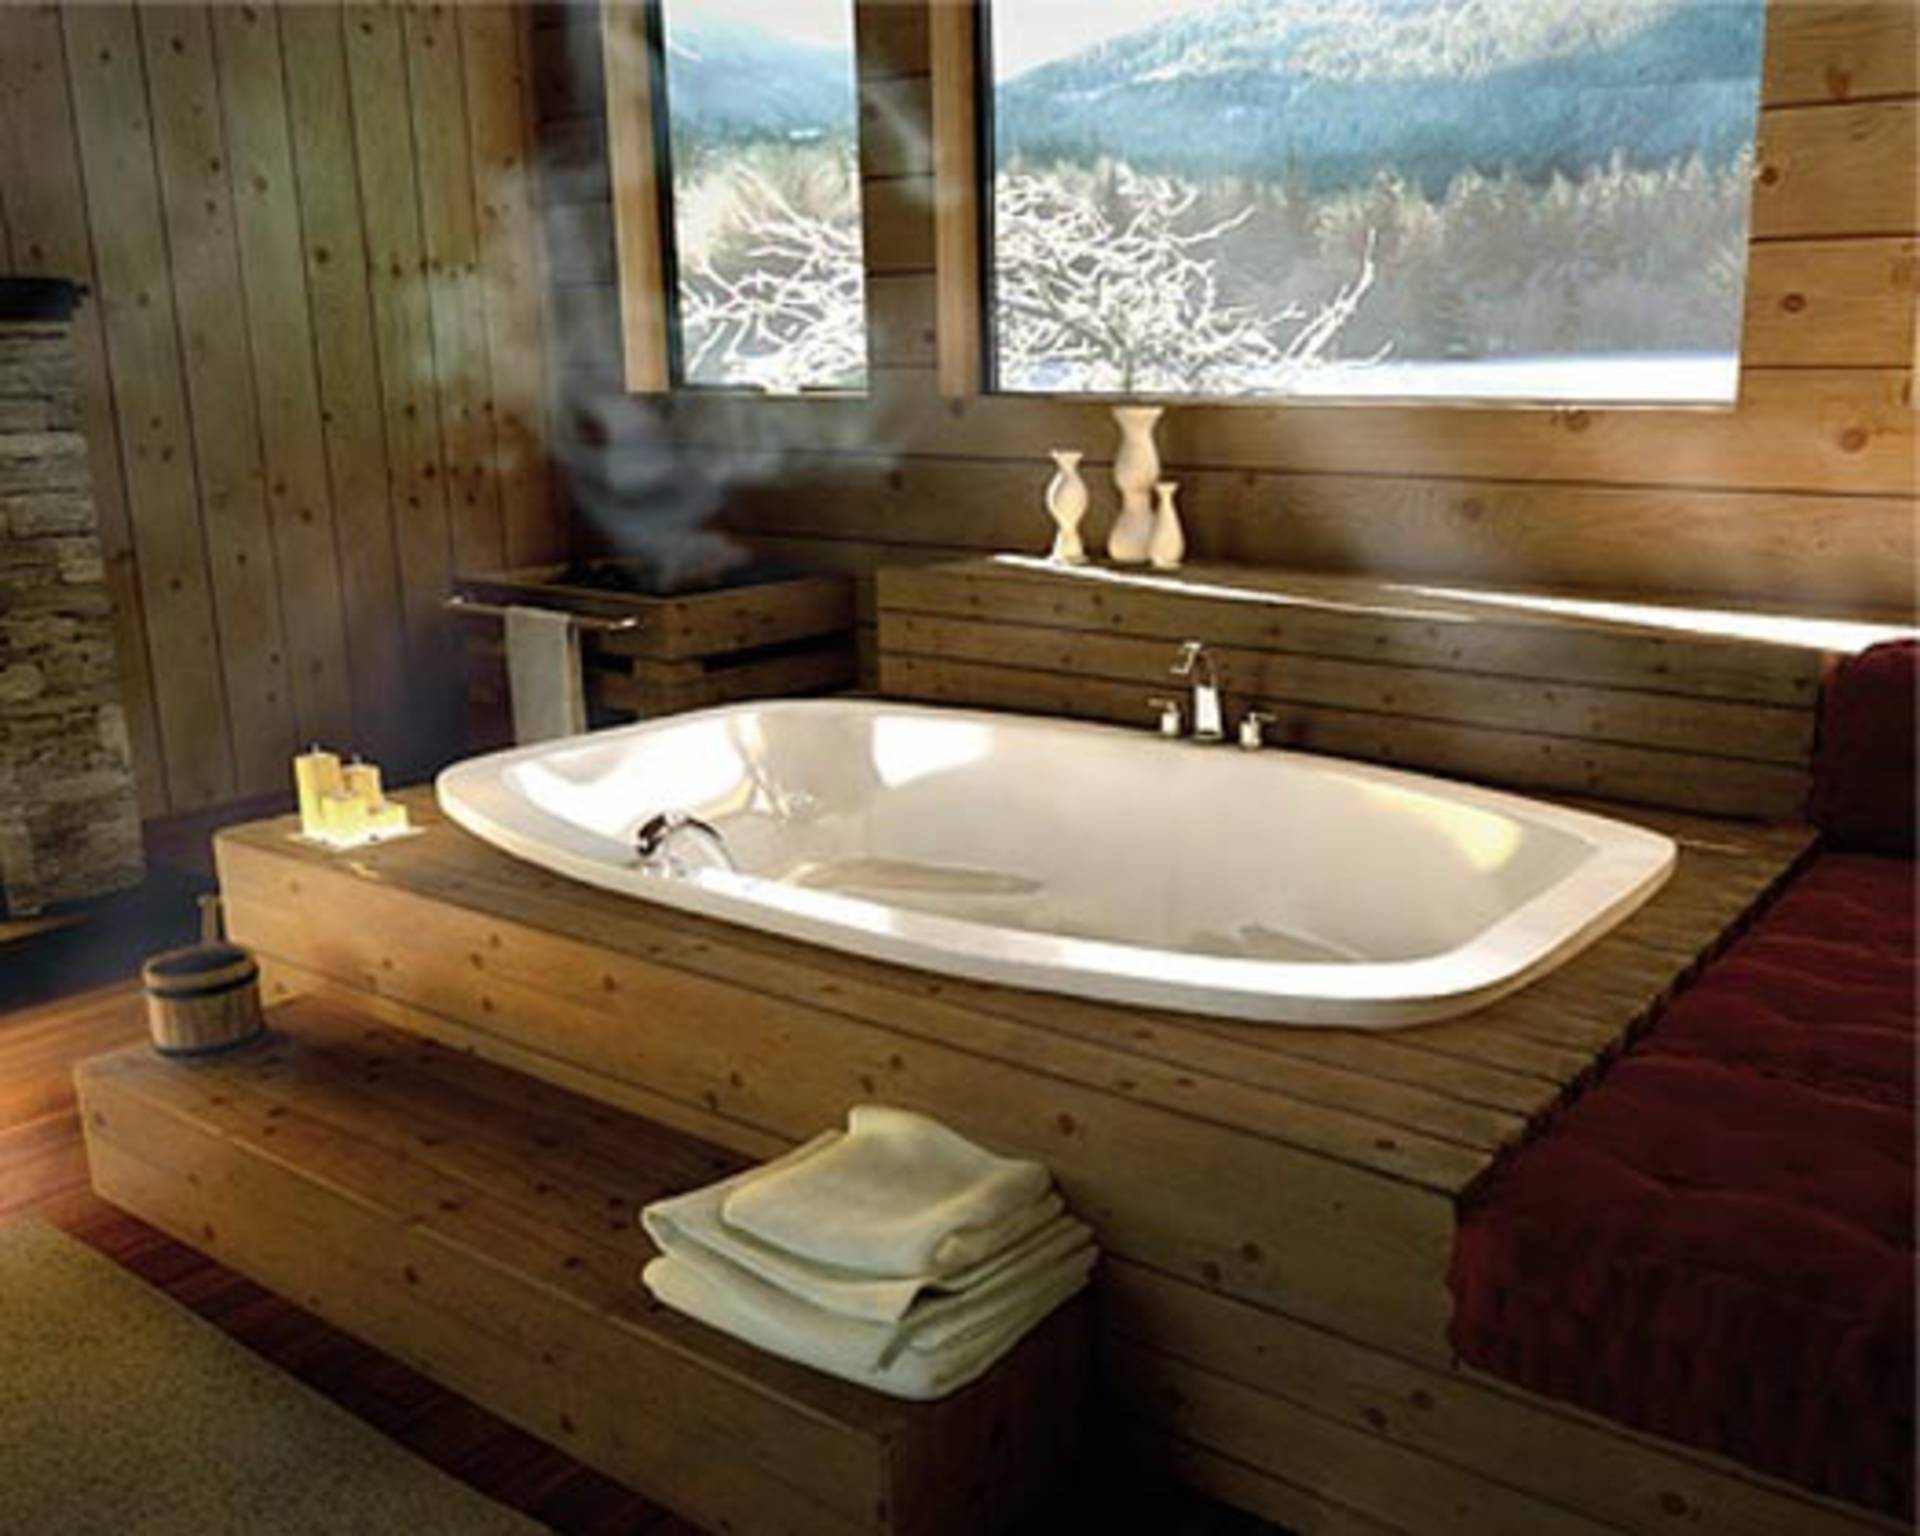 Rhapsody Bathtub Design from Pearl Series: Relax and Take it Easy ...